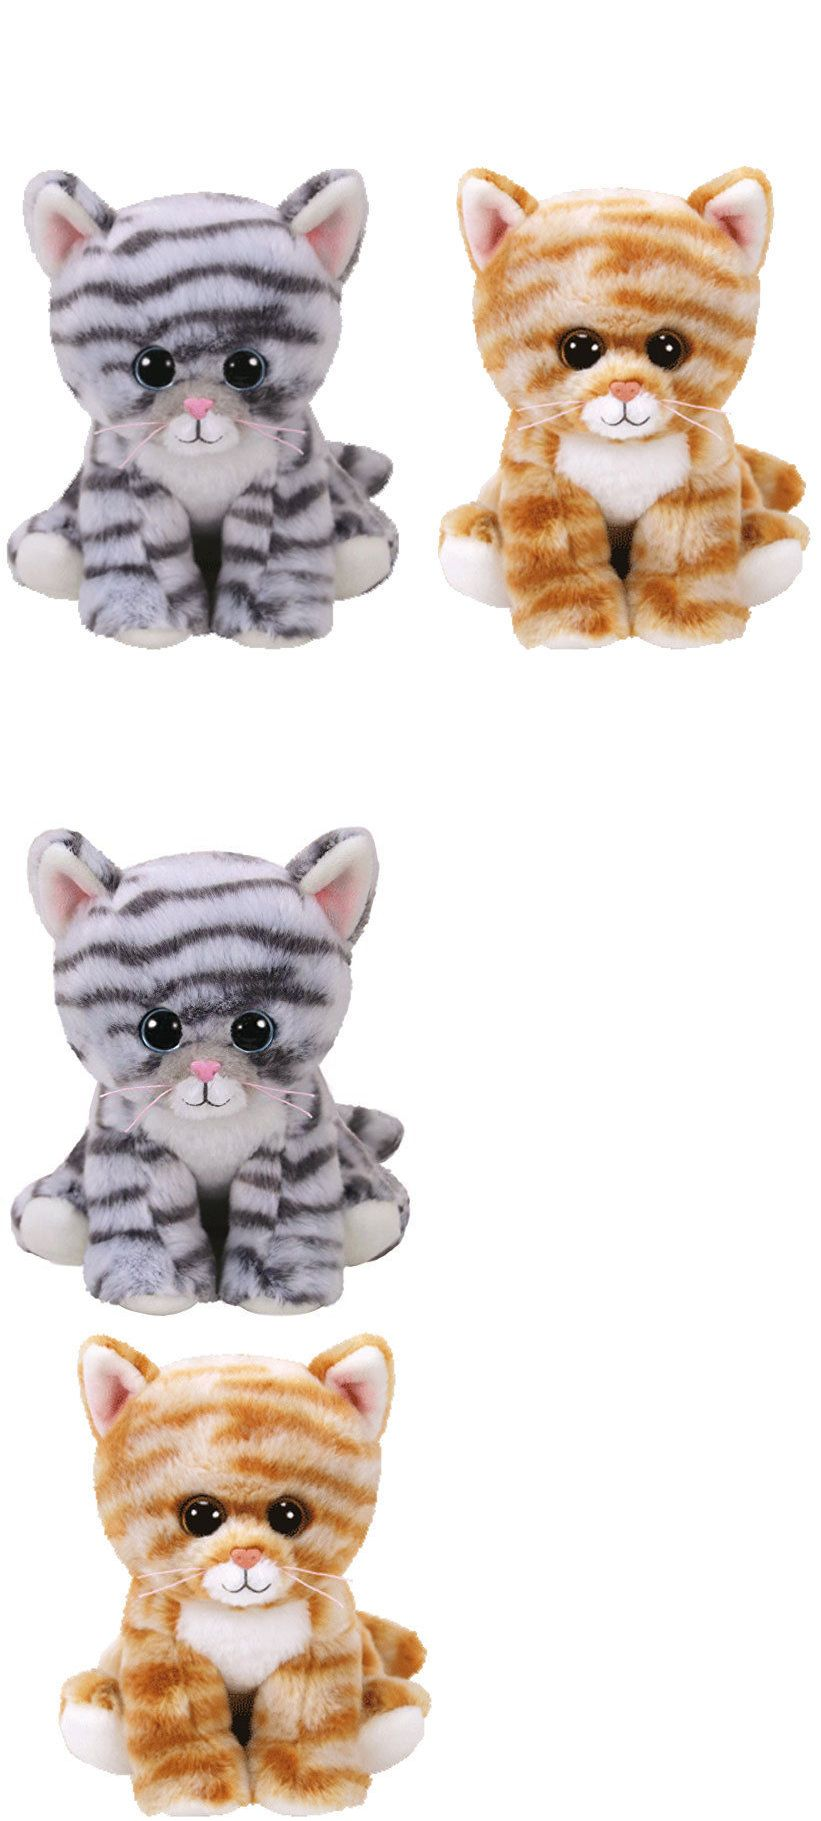 996160880df Current 165959  Set Of 2 Ty Beanie Baby 6 Millie And Cleo Tabby Cat Plush W  Mwmt S Ty Heart Tags -  BUY IT NOW ONLY   13.95 on eBay!